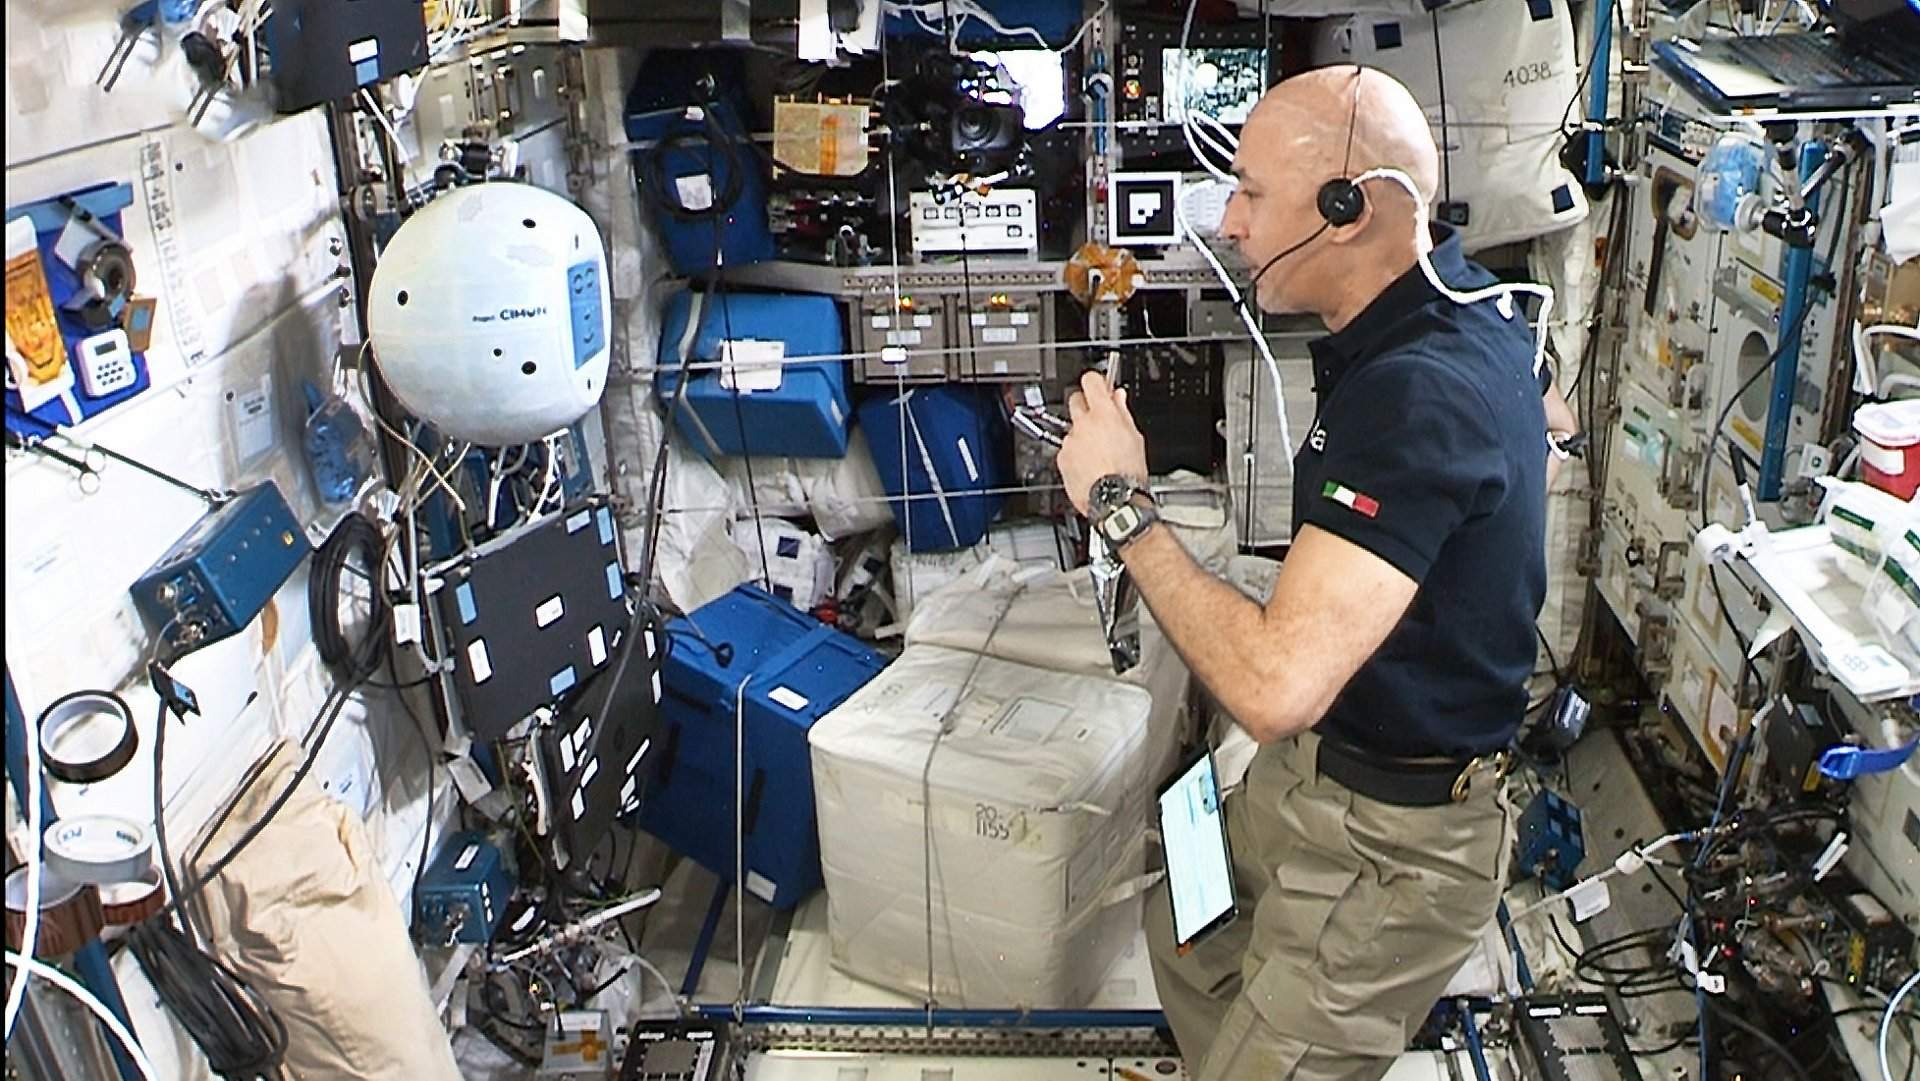 While starting up its new hardware and software, ESA´s Astronaut Luca Parmitano asked CIMON-2 to fly to the Biological Experiment Laboratory (Biolab) inside the Columbus module.